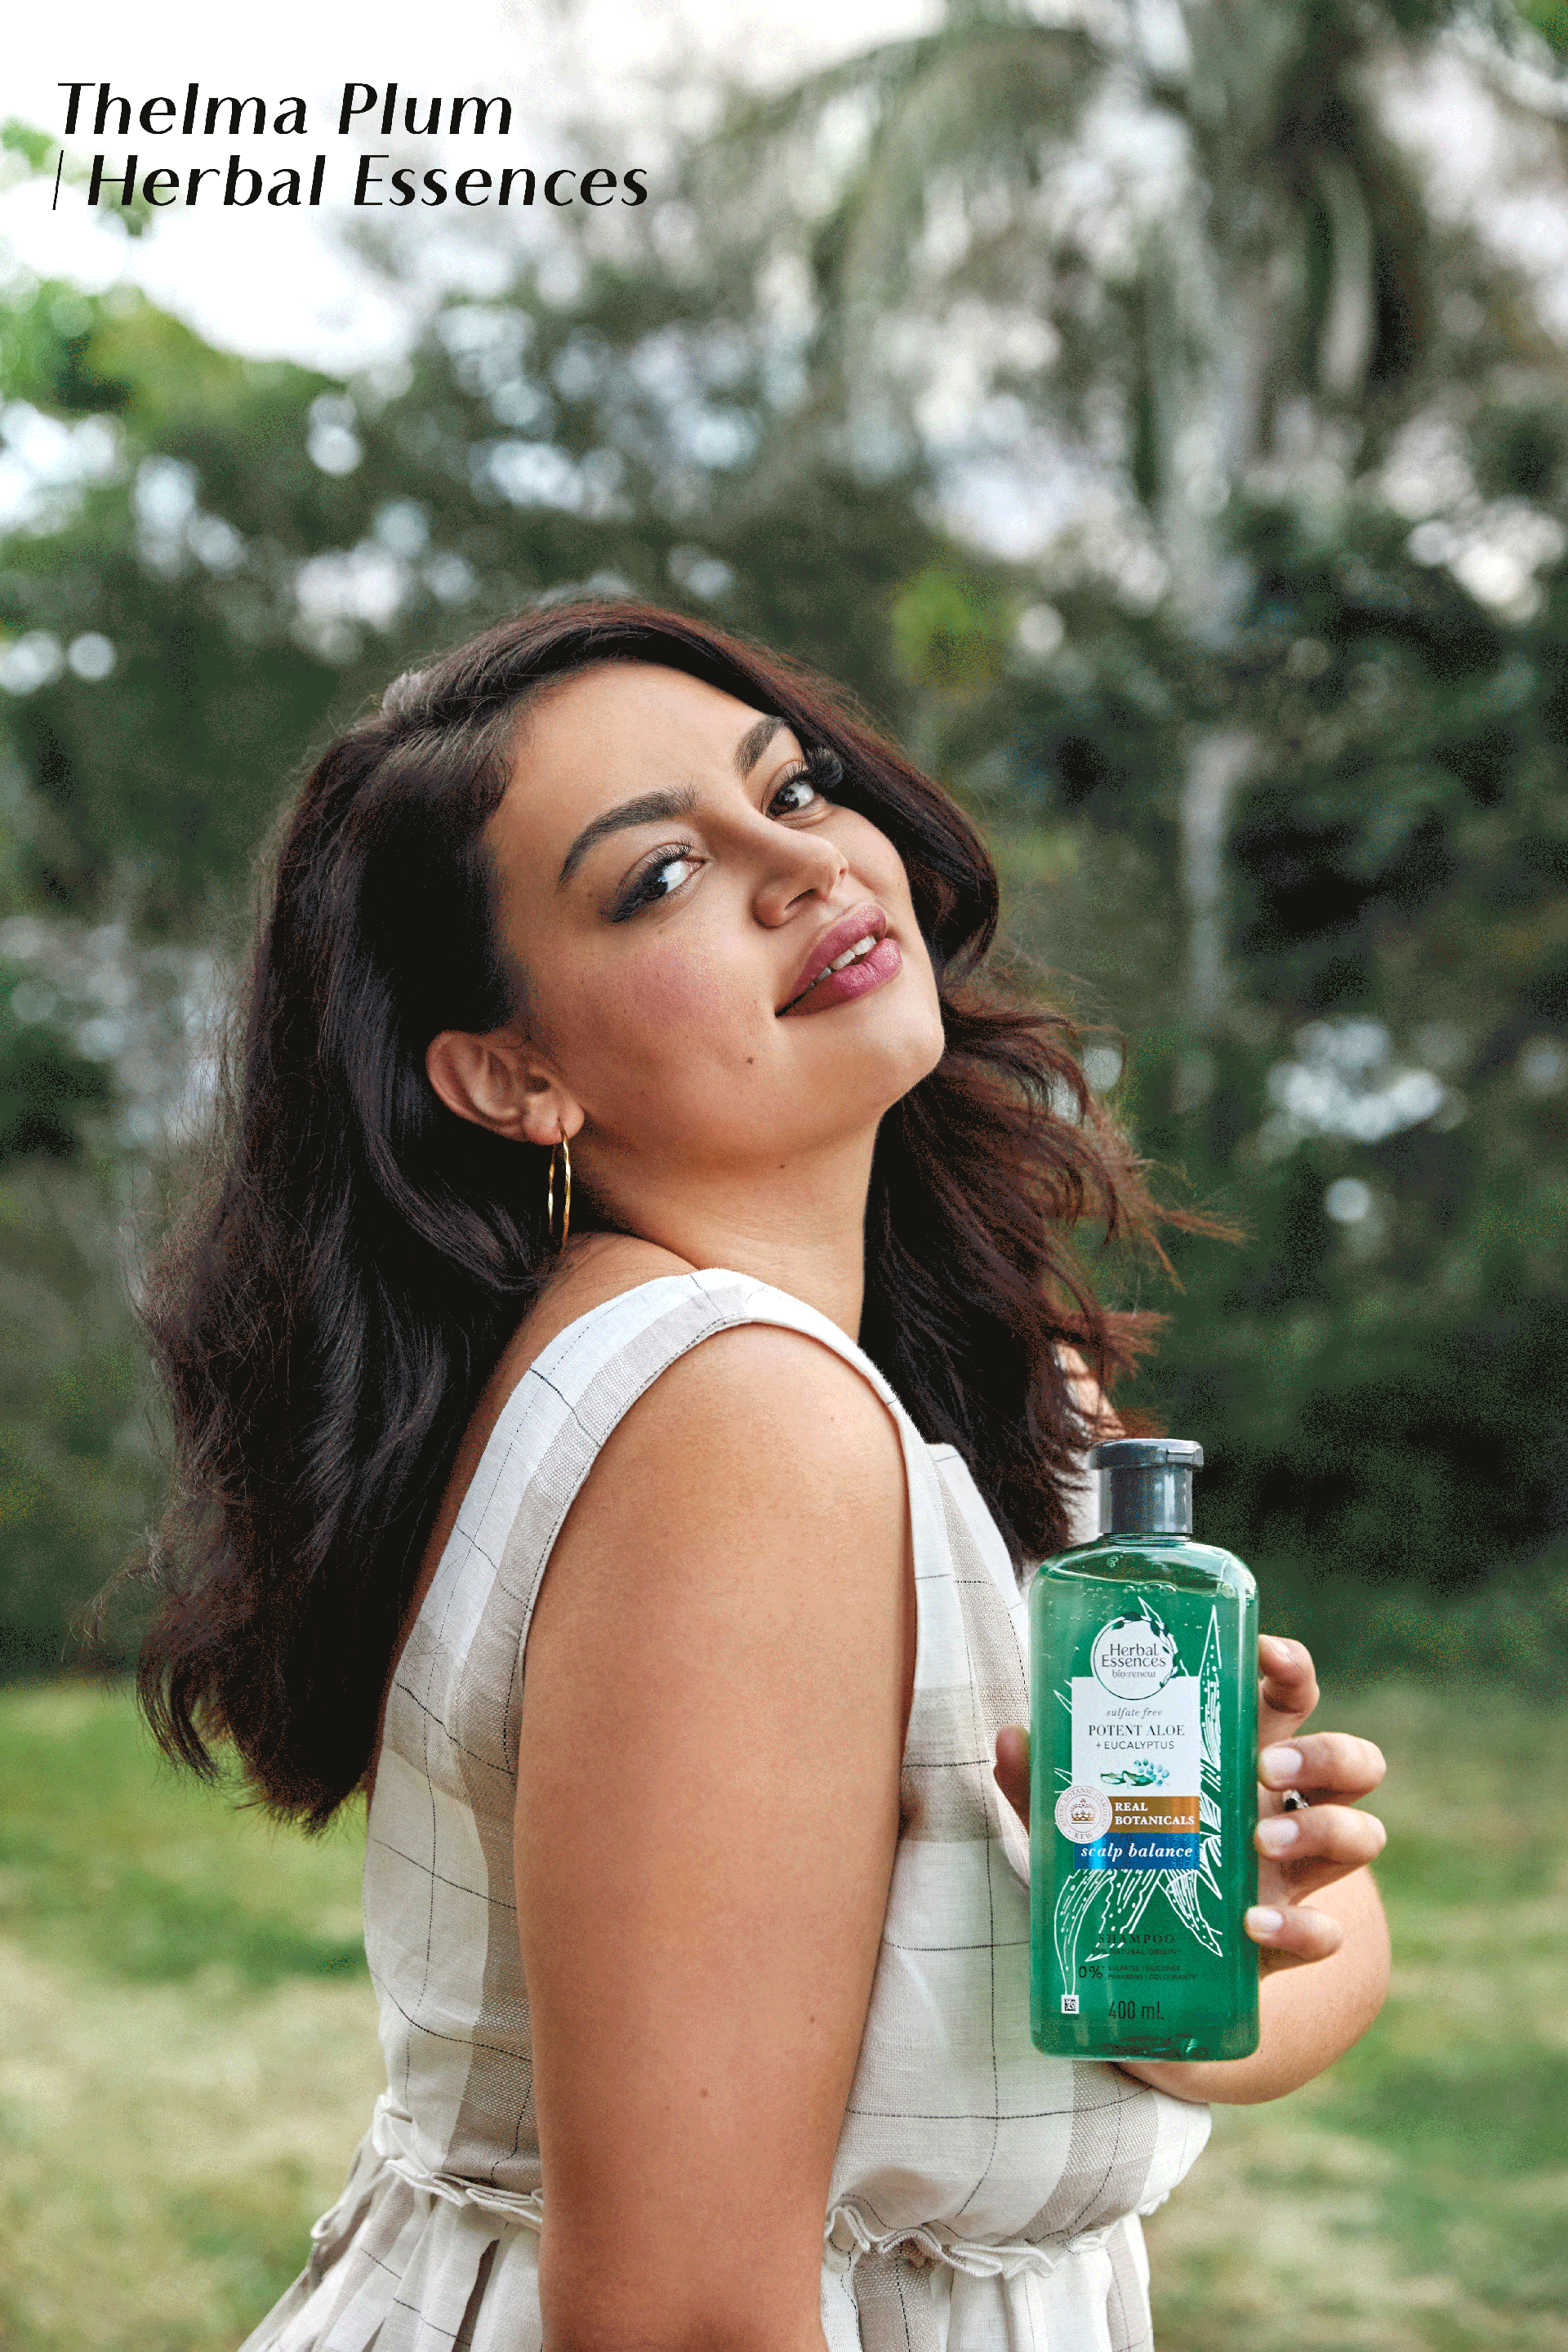 Thelma Plum | Herbal Essences